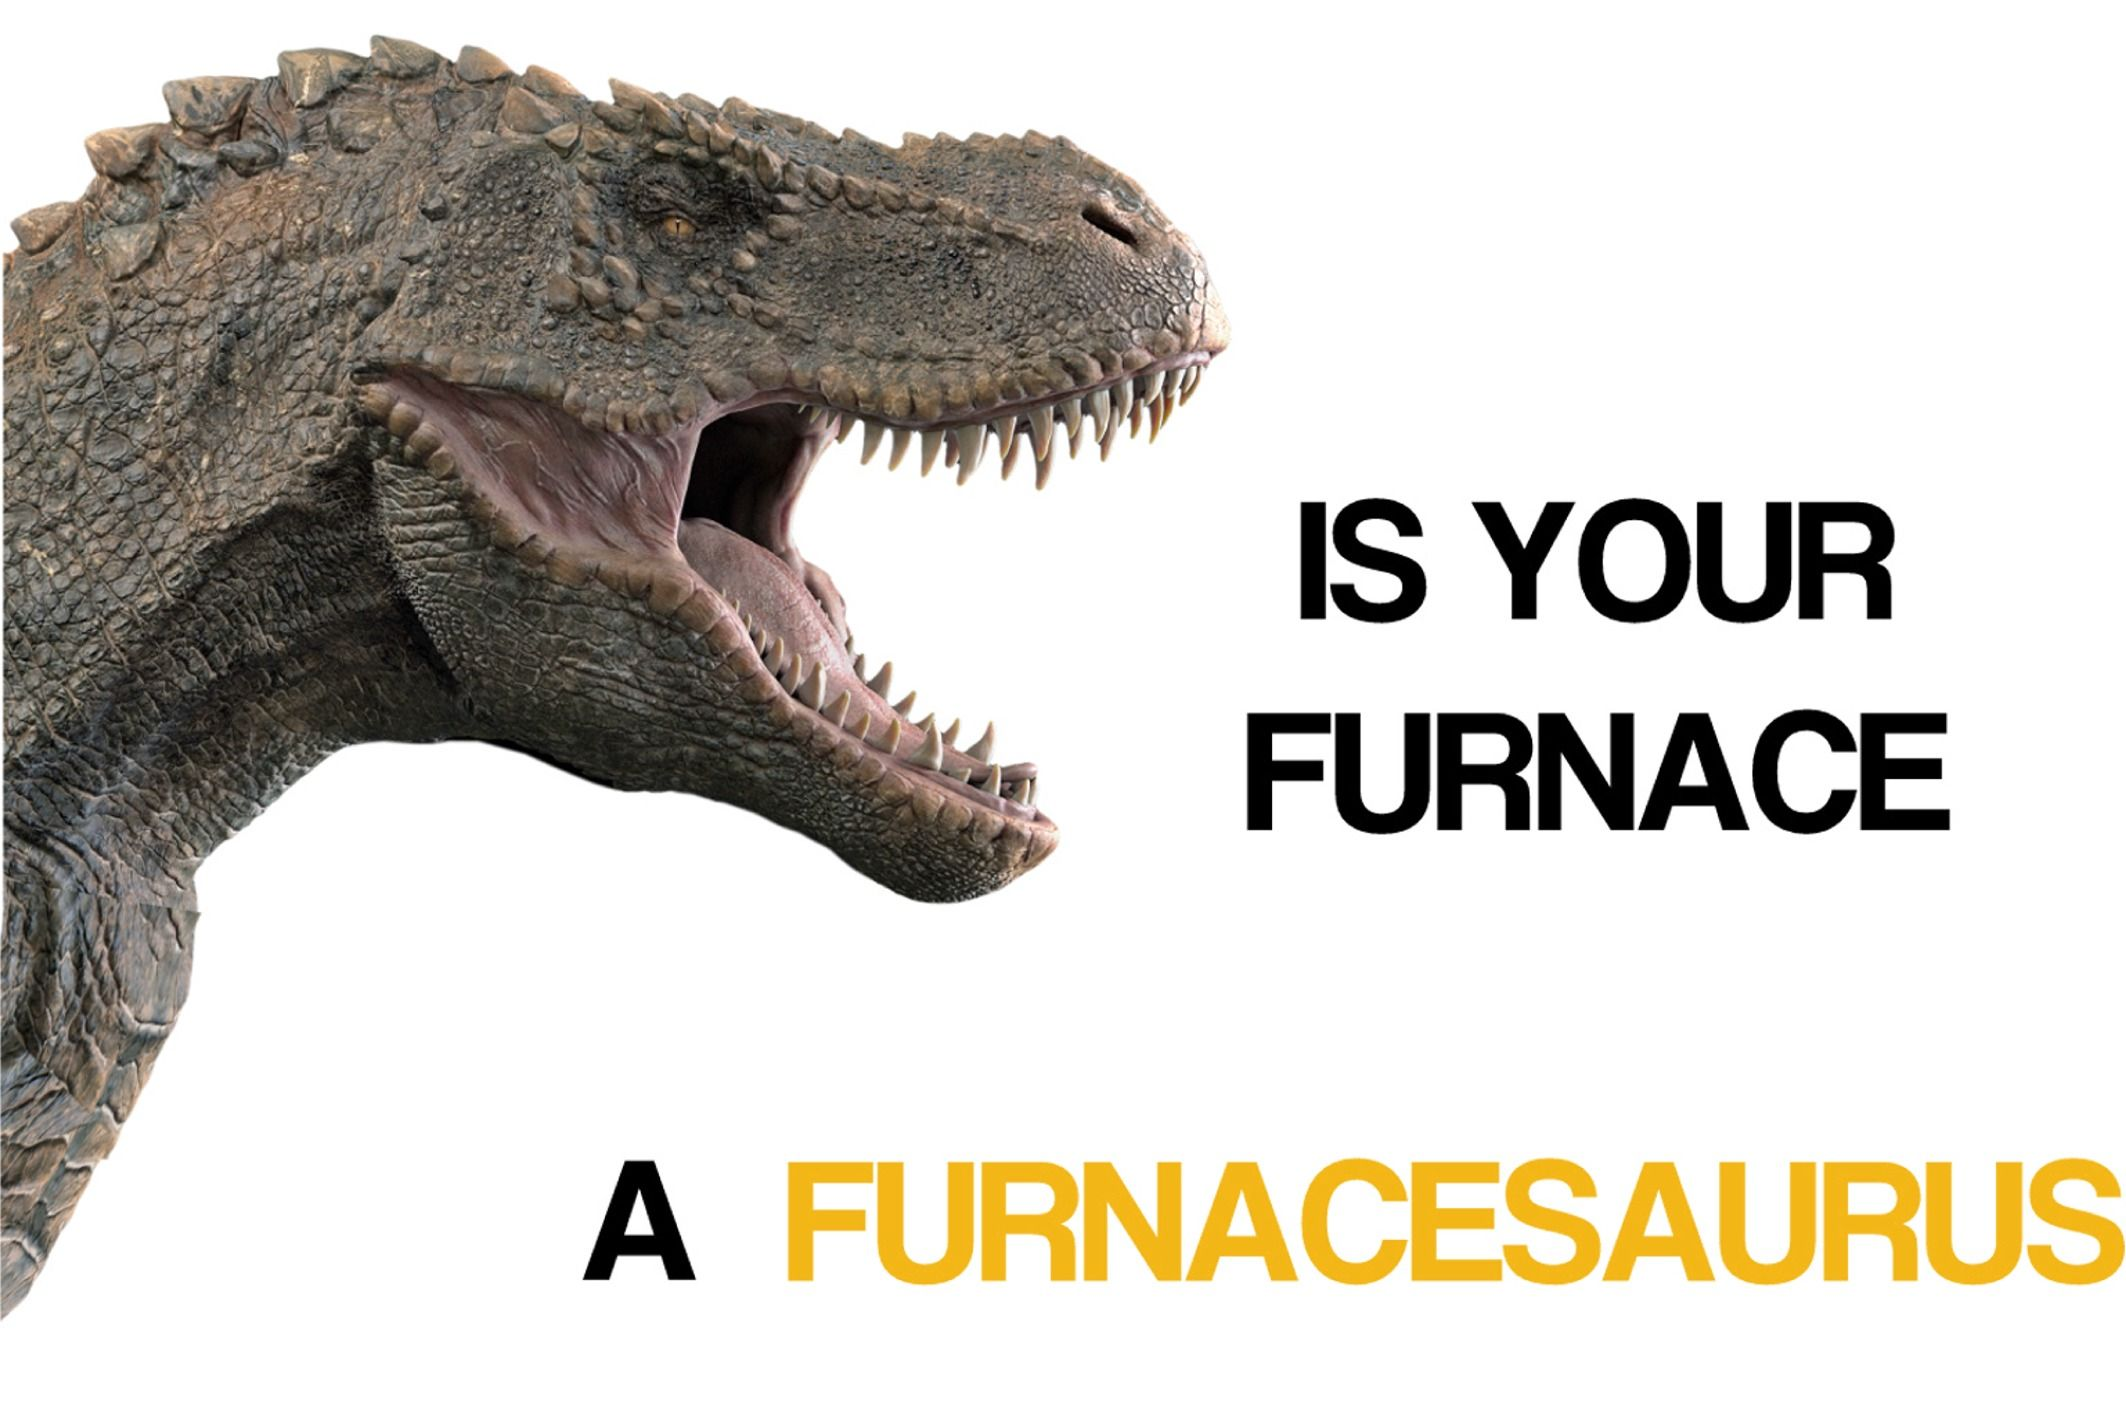 Oldest Furnace Contest If Your Furnace Could Be Considered